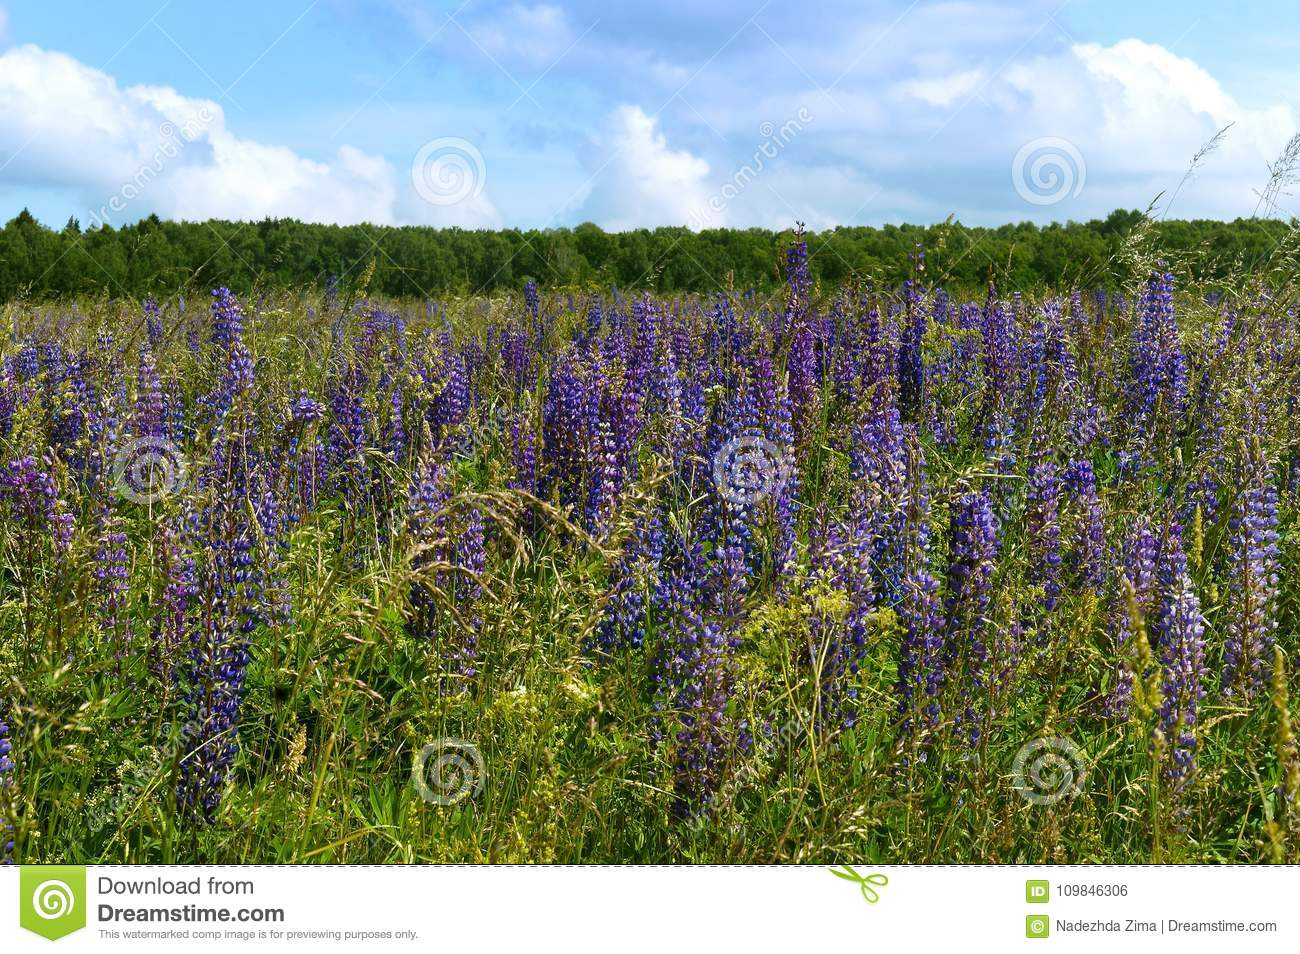 Wildflowers lilac and yellow and white meadow flowers and herbs download wildflowers lilac and yellow and white meadow flowers and herbs stock photo image mightylinksfo